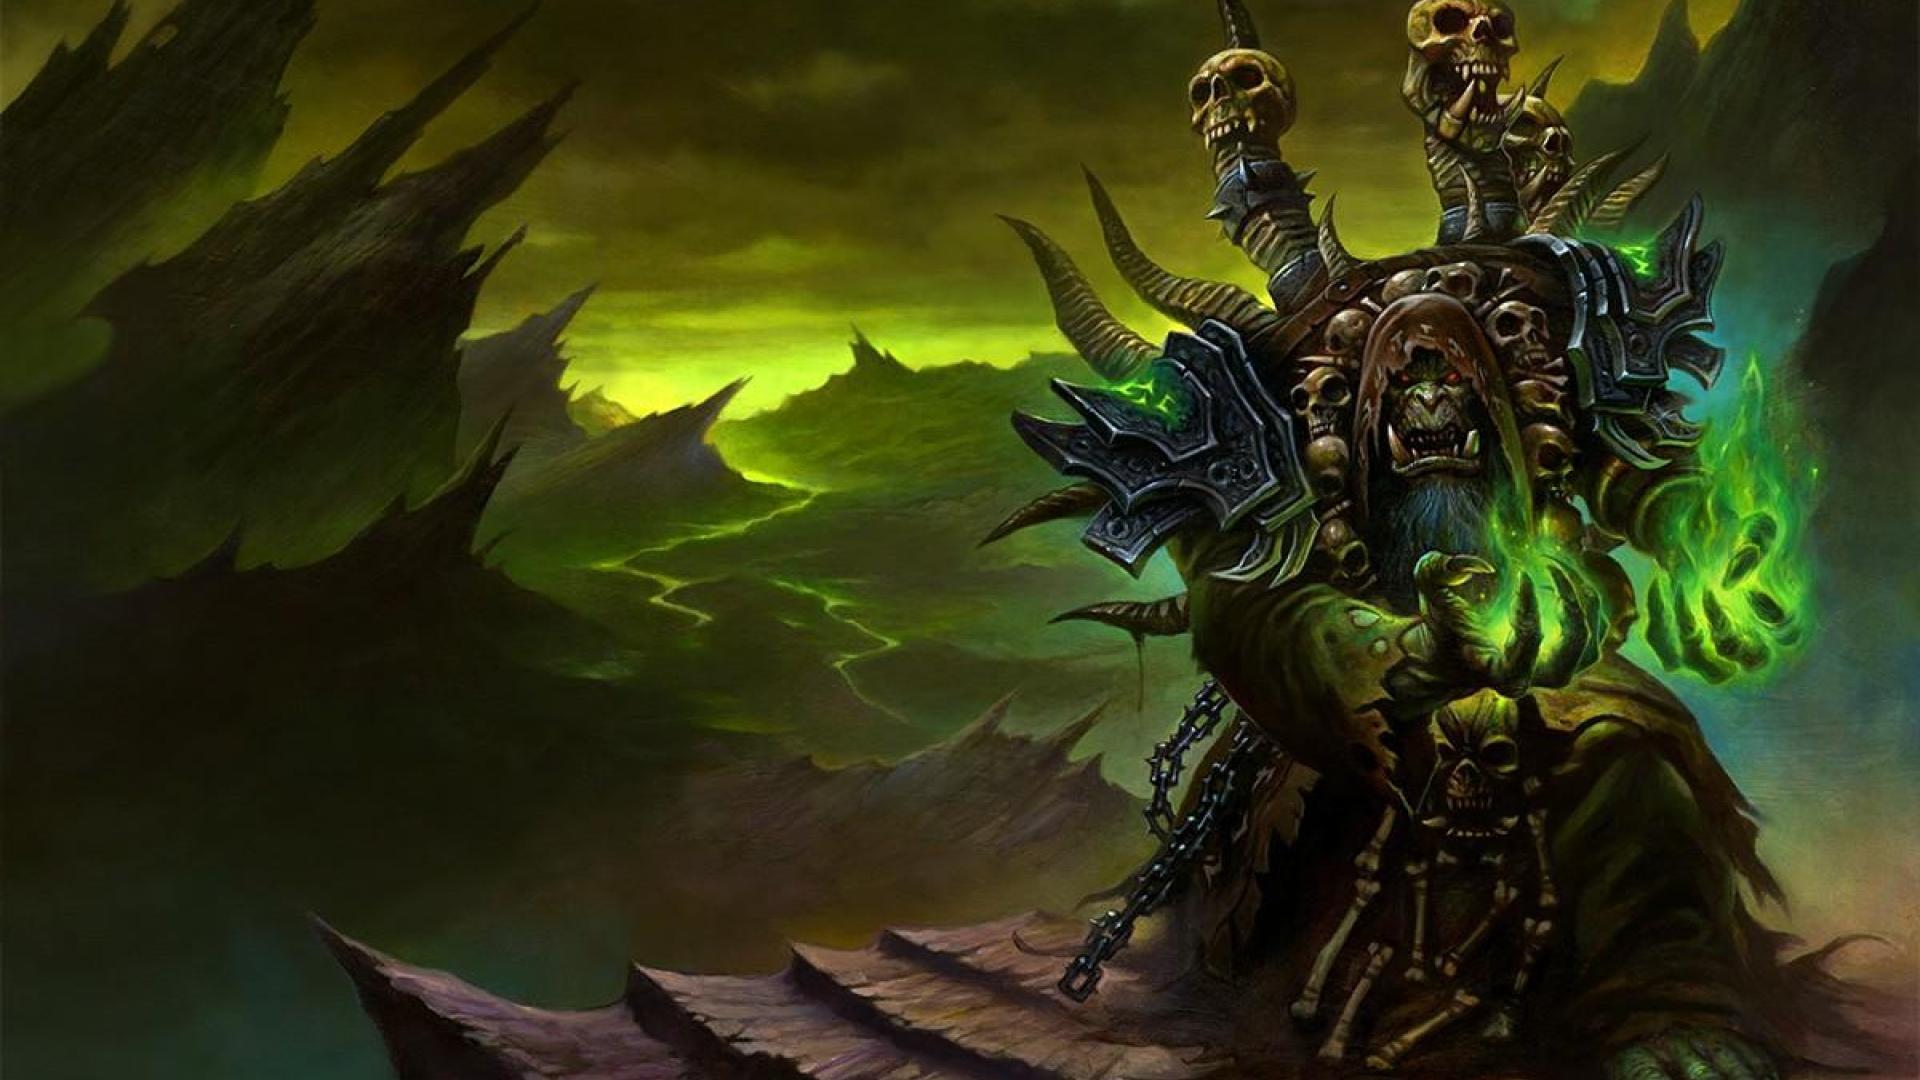 Free Download World Of Warcraft Wallpapers Hd 1920x1080